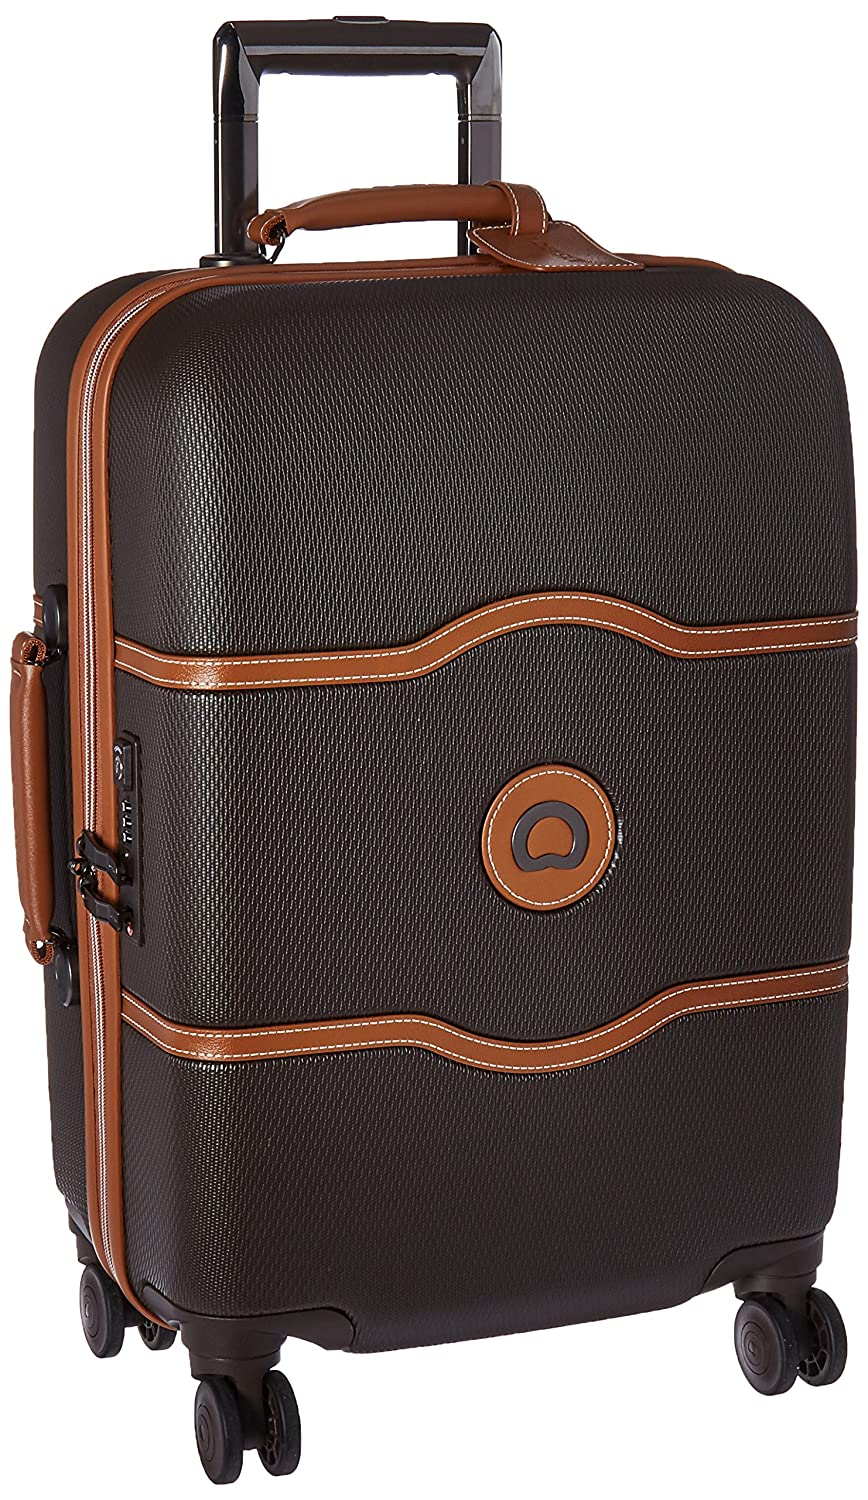 The DELSEY Paris Luggage Chatelet Hard+ Carry On Spinner Suitcase Hardcase travel product recommended by Cacinda Maloney on Lifney.